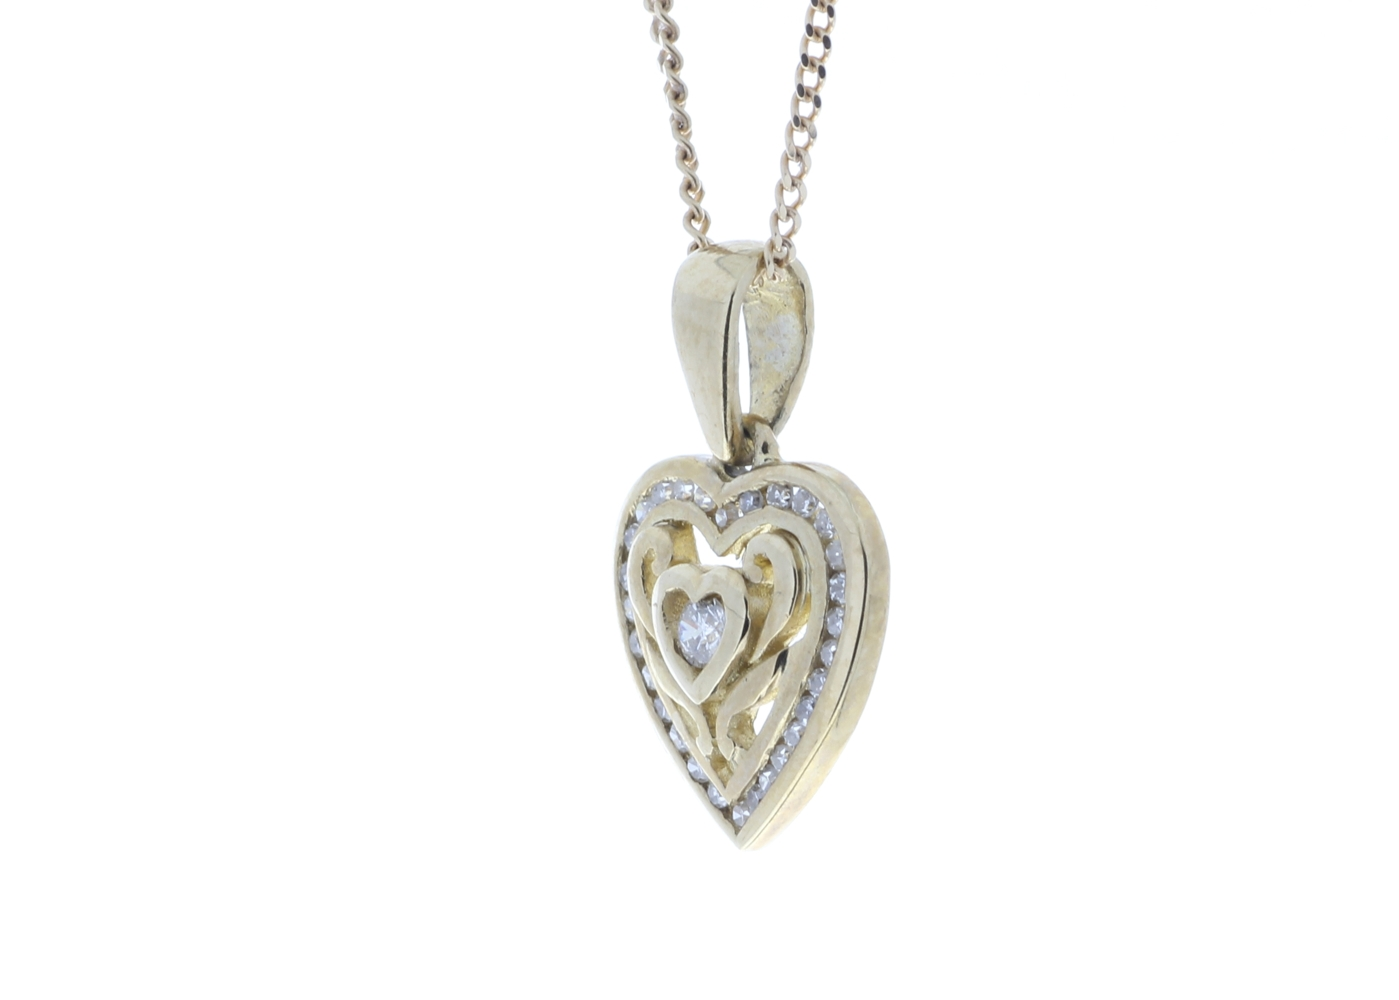 Lot 42 - 9ct Yellow Gold Heart Pendant Set With Diamonds With Centre Heart and Swirls 0.18 Carats